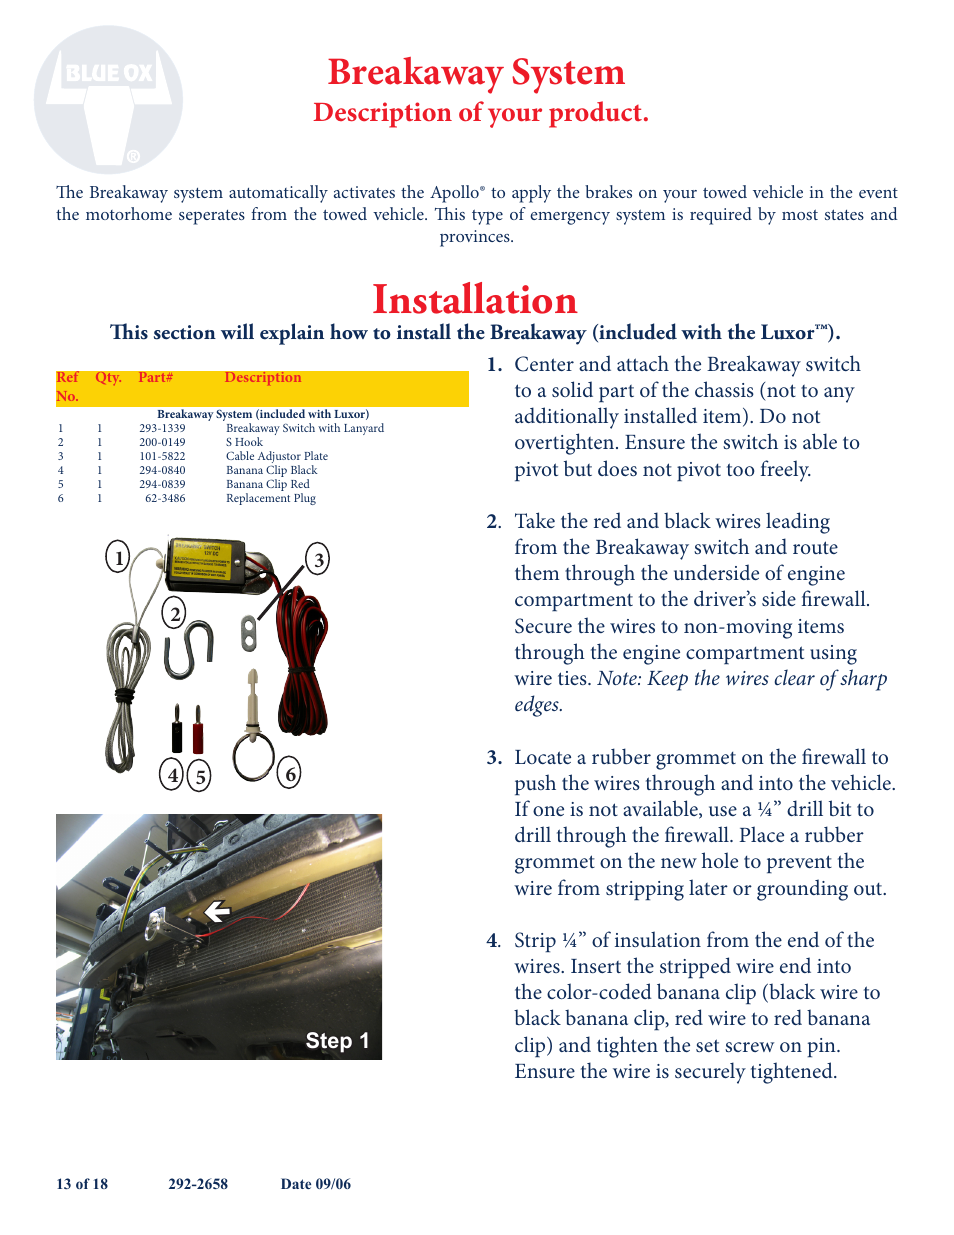 Installation Breakaway System Description Of Your Product Blue How To Wire Switch Ox Bx88193 User Manual Page 16 22